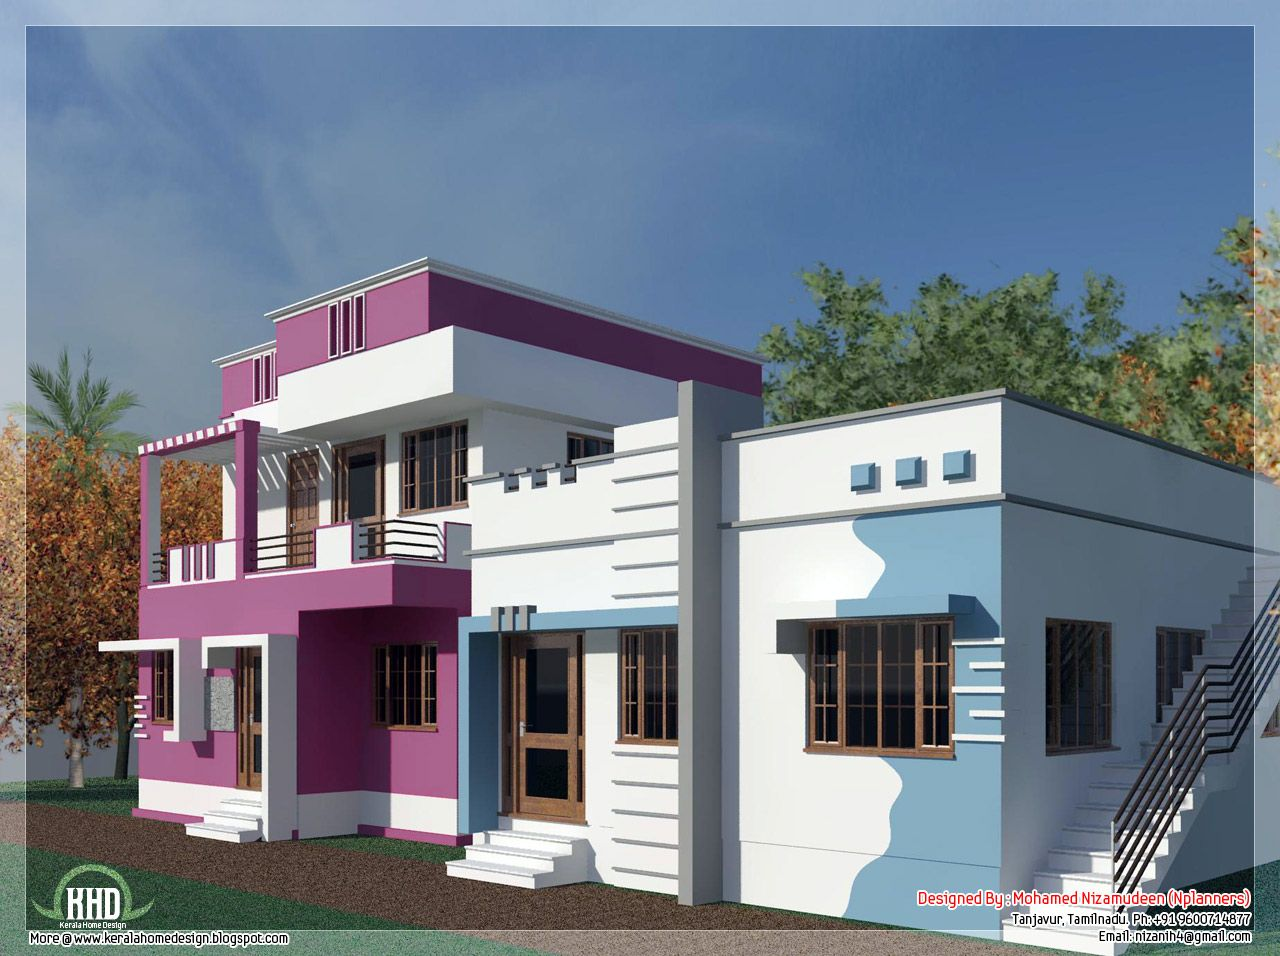 Tamilnadu Model Home Design In 3000 Sq.feet   Kerala Home Design . Ideas